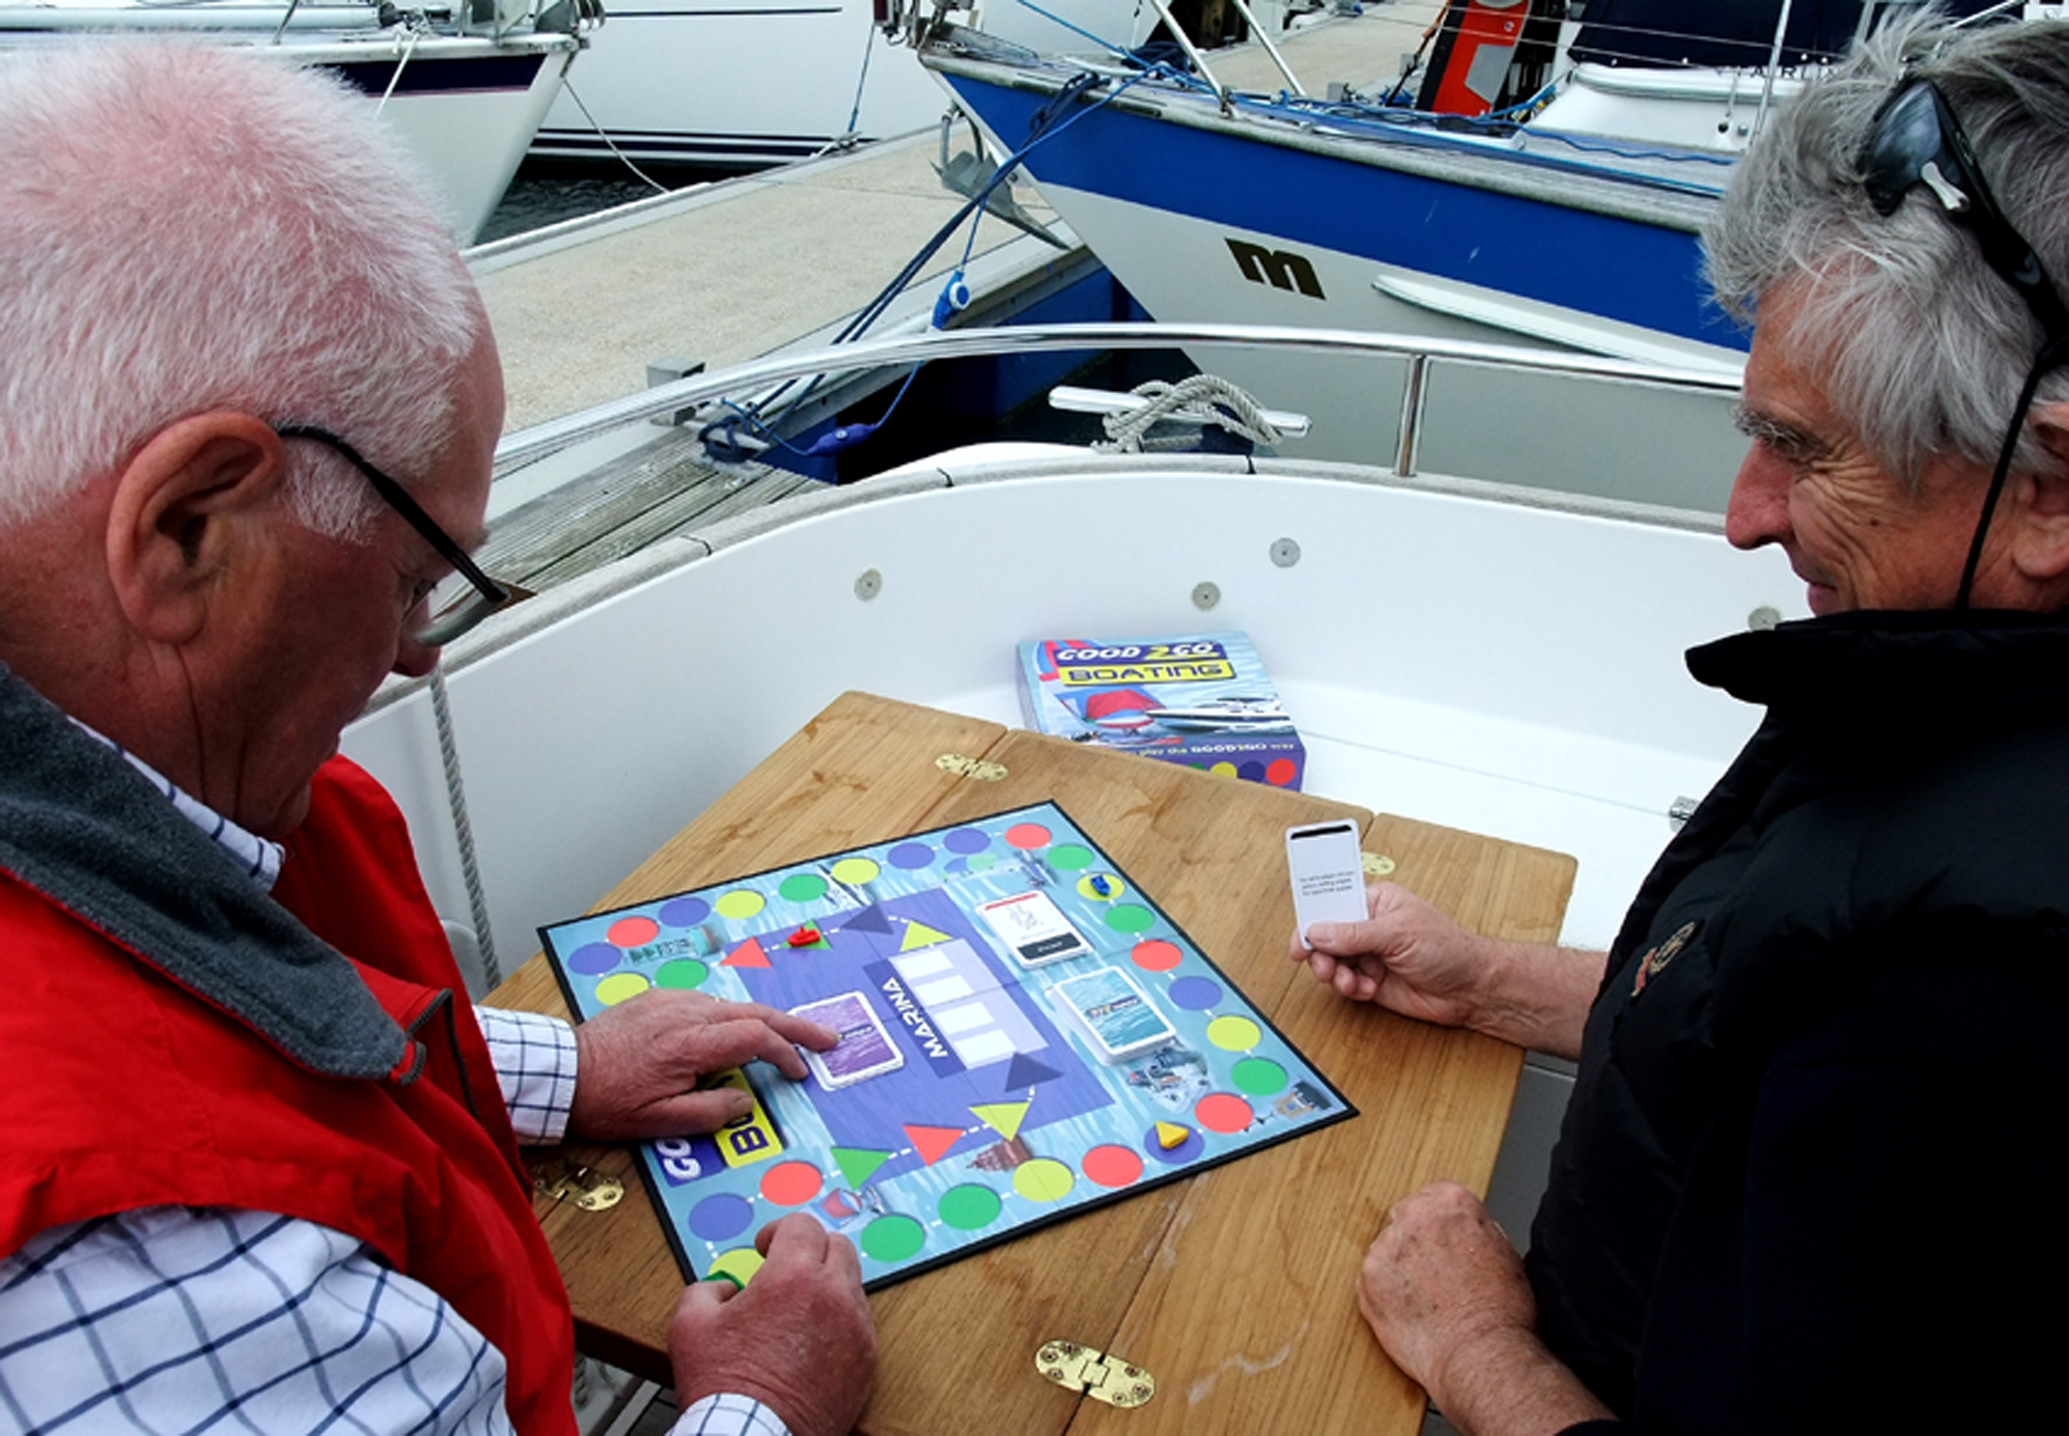 Good to go... Boating board game